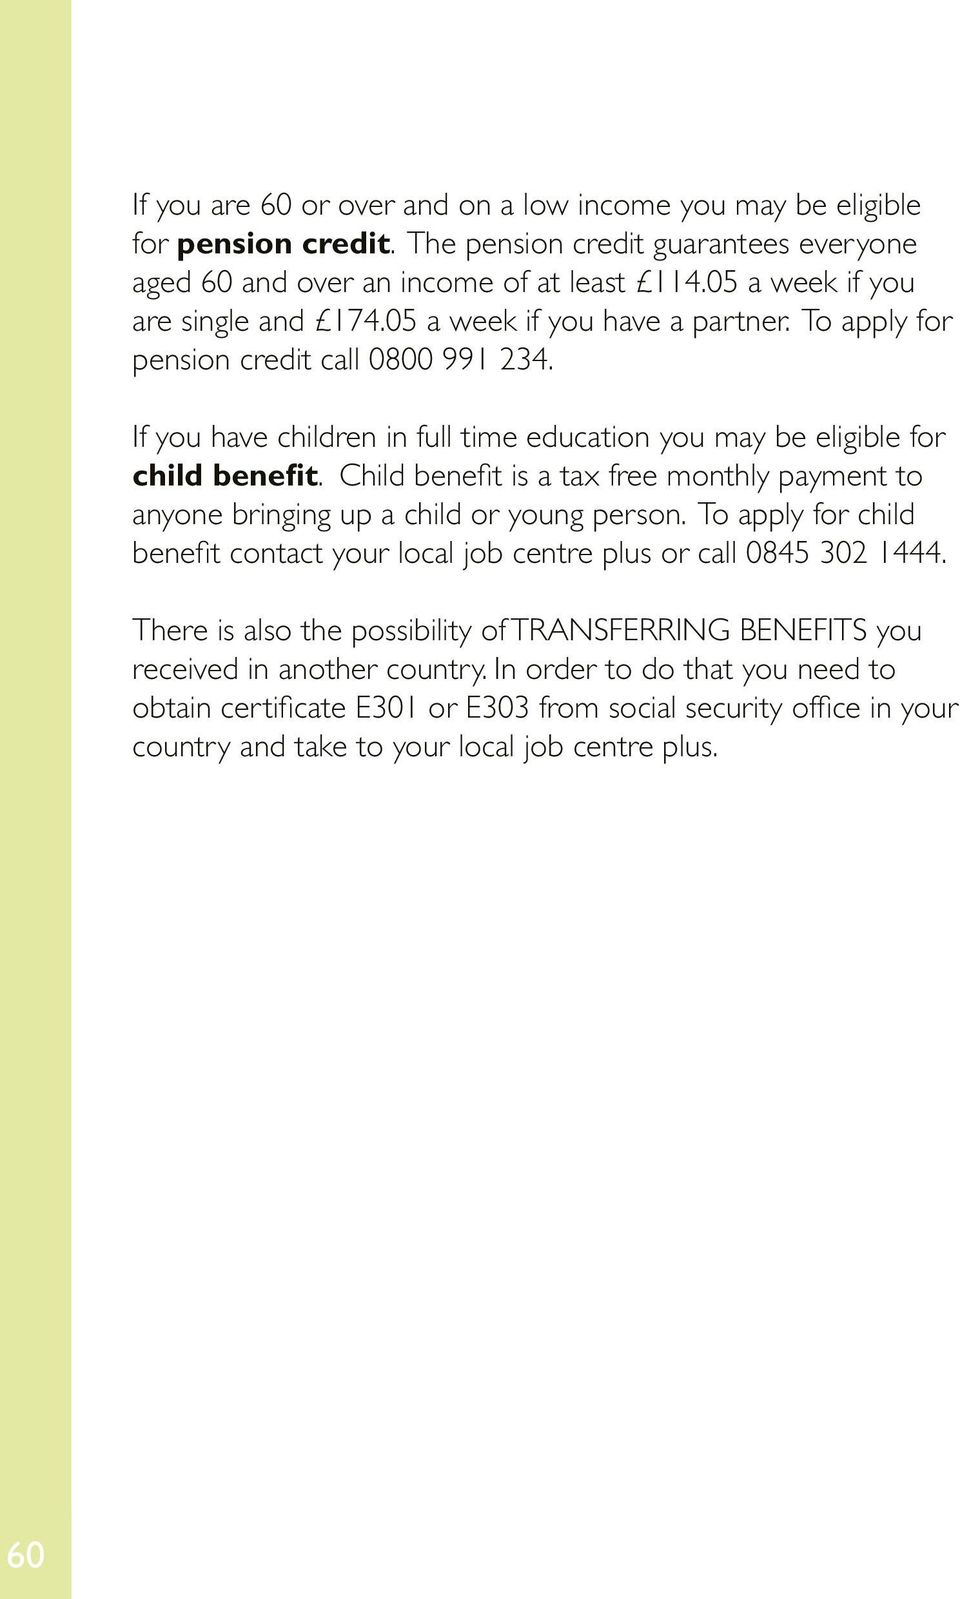 If you have children in full time education you may be eligible for child benefit. Child benefit is a tax free monthly payment to anyone bringing up a child or young person.